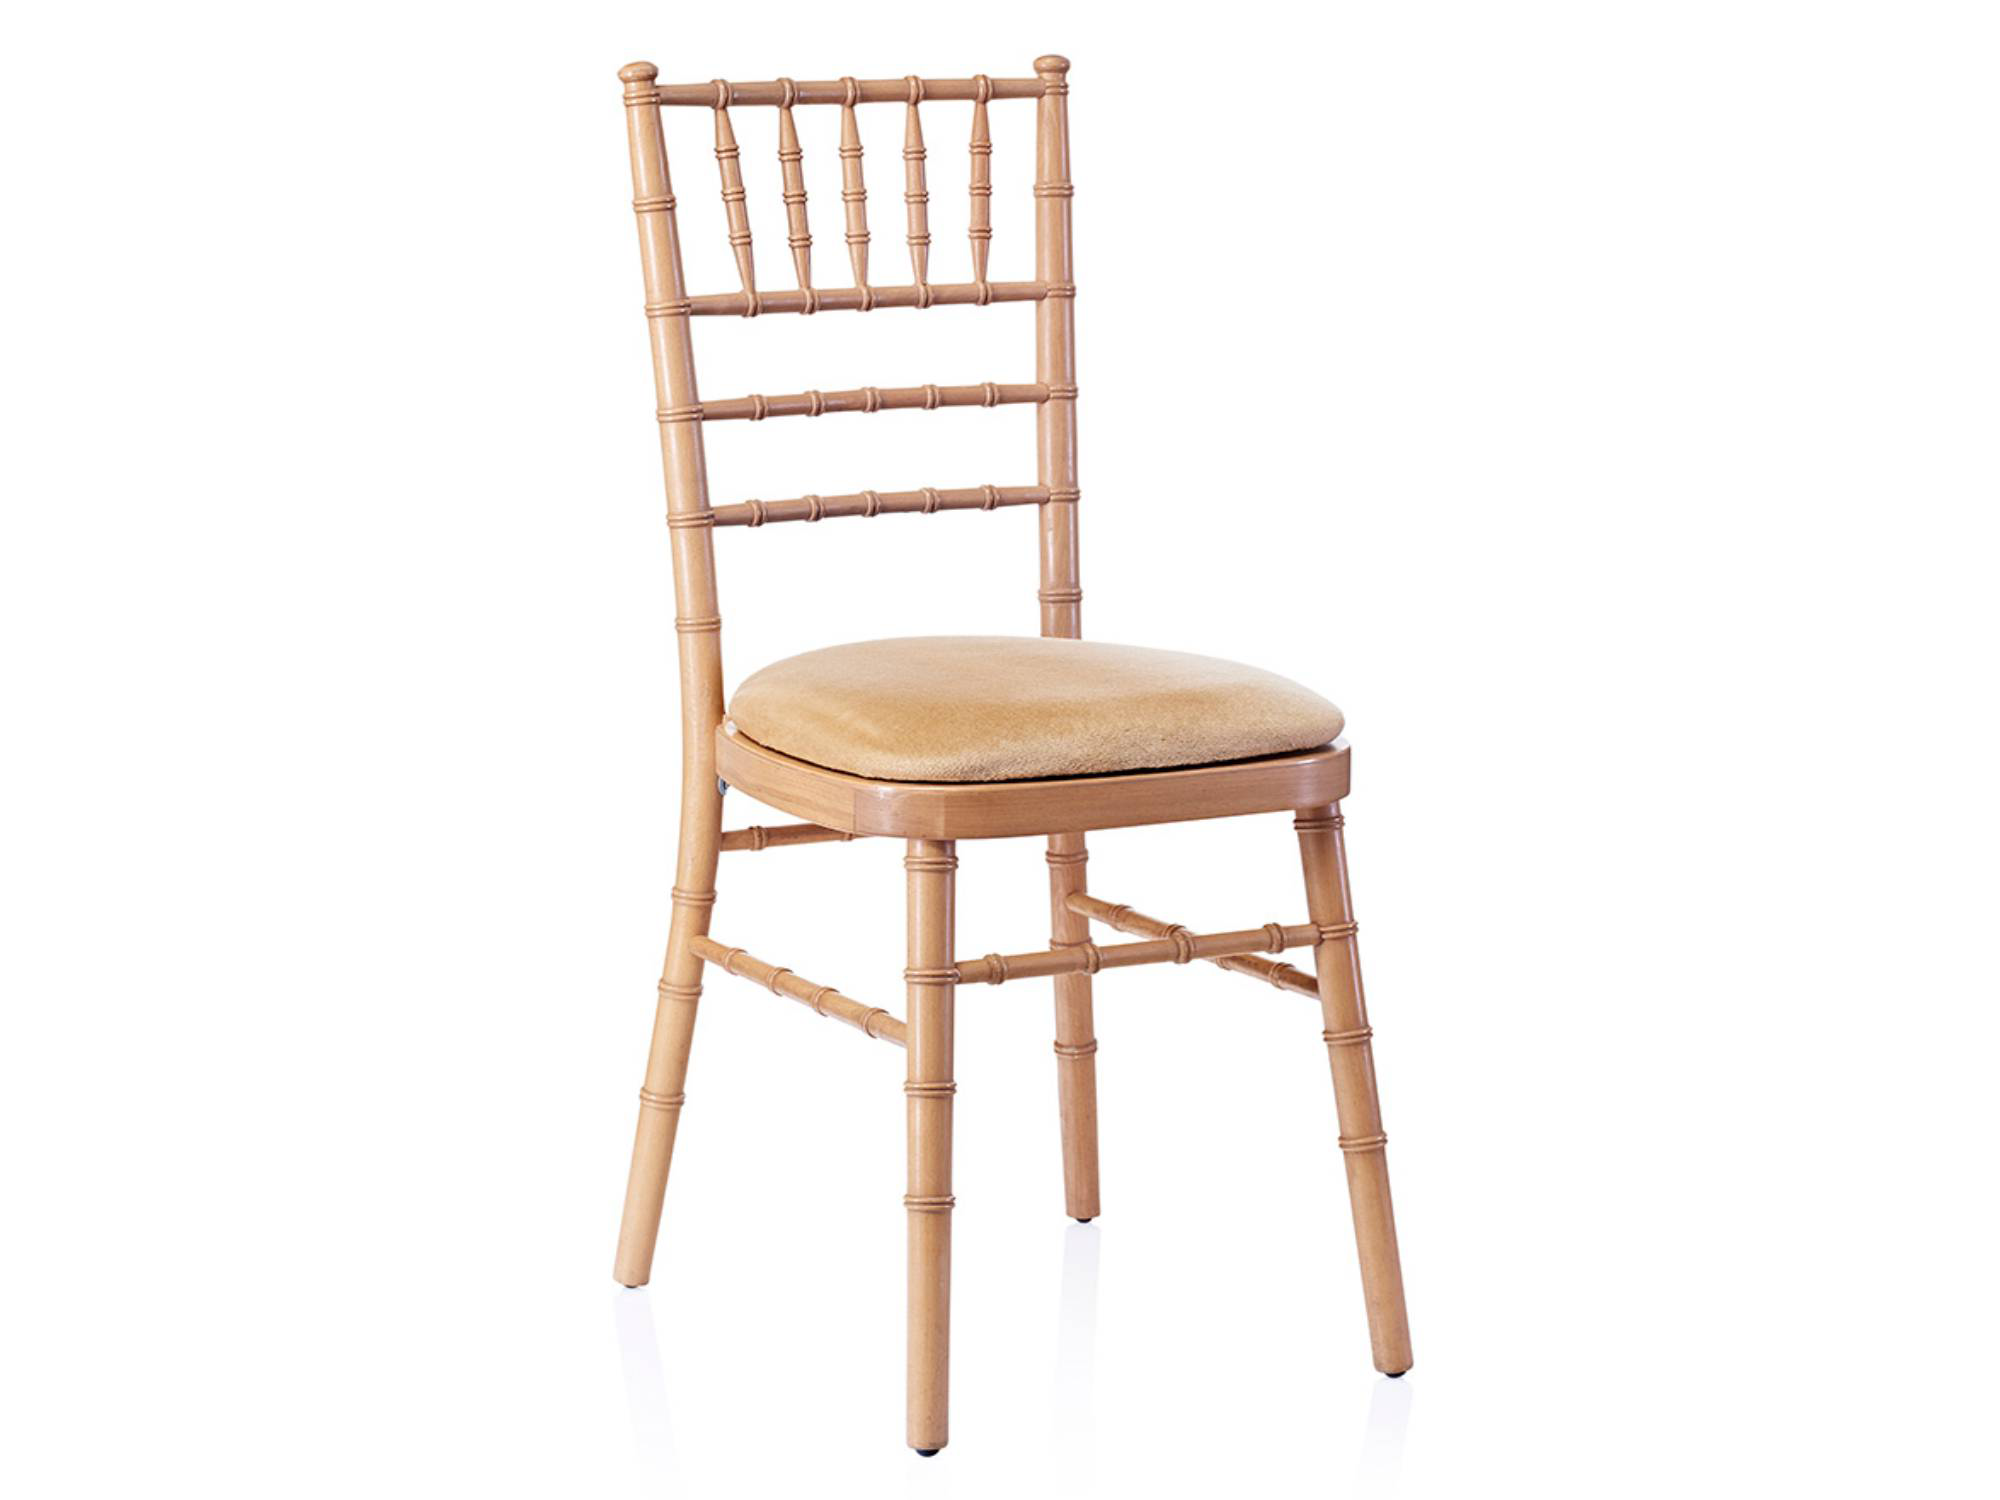 CHIAVARI CHAIR - NATURAL WOOD